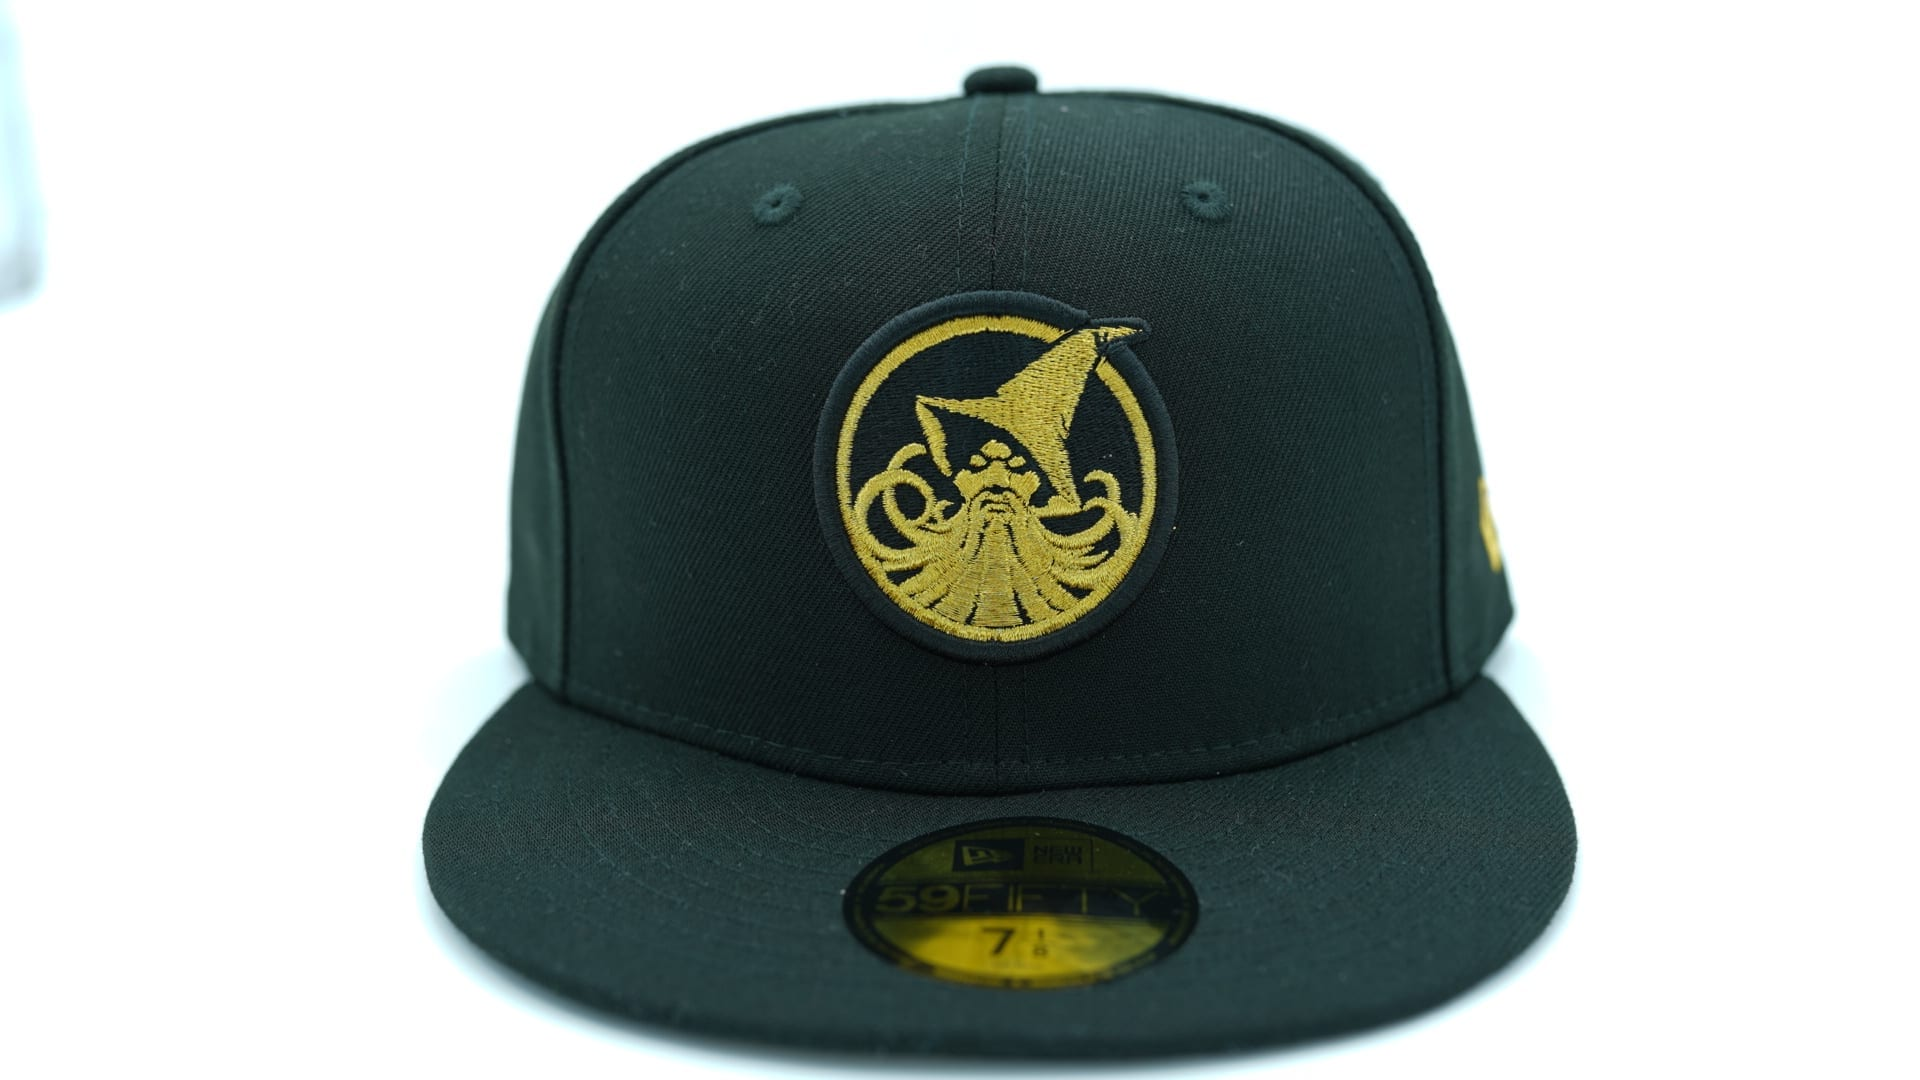 820d98e8 Charlotte Hornets The Fade High Crown Fitted Baseball Cap by MITCHELL & NESS  x NBA